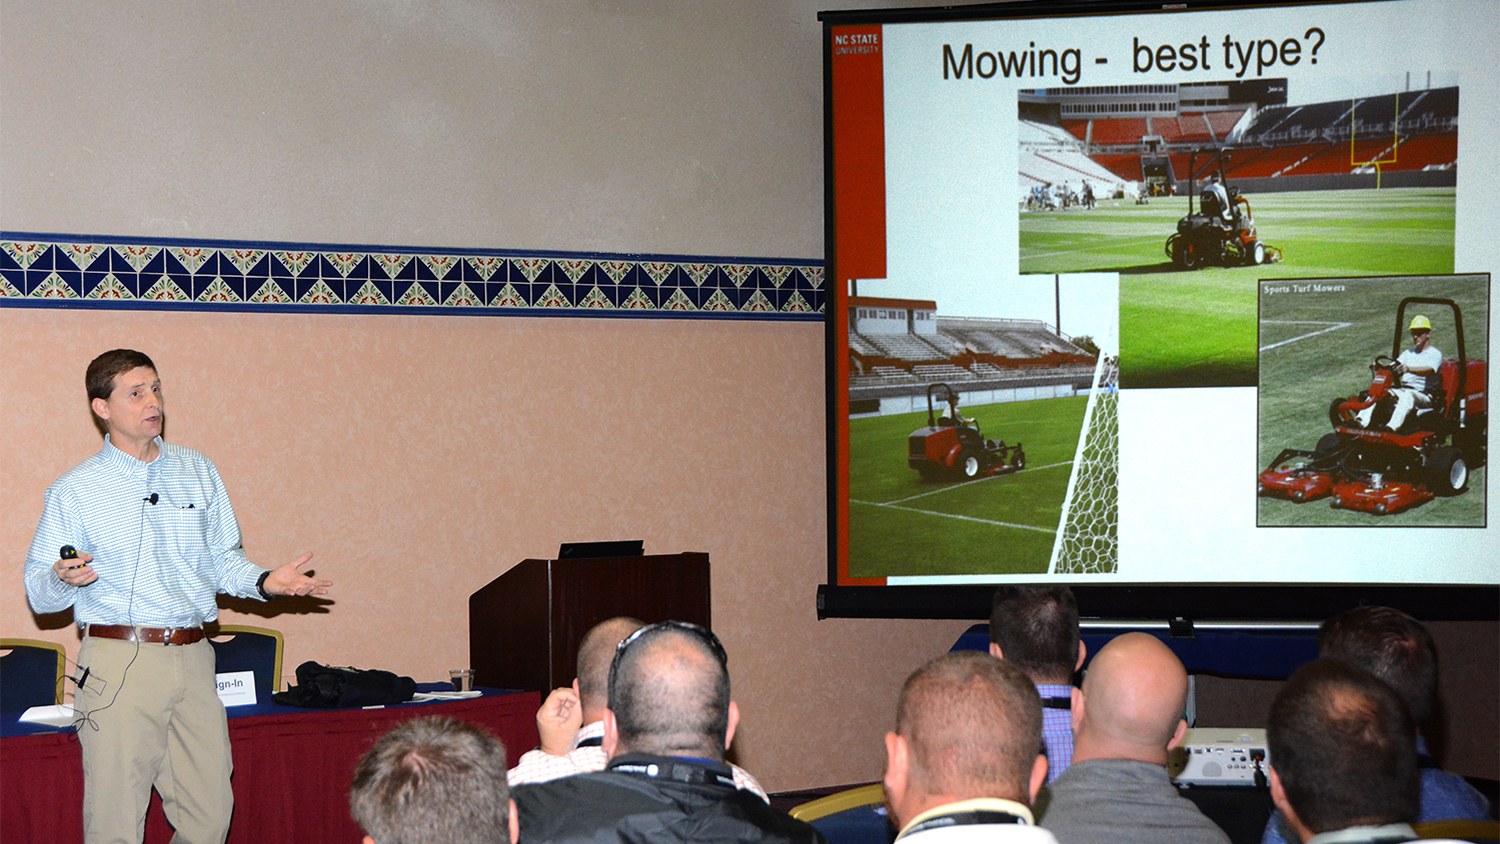 Grady Miller speaks to a group about sports turf mowing